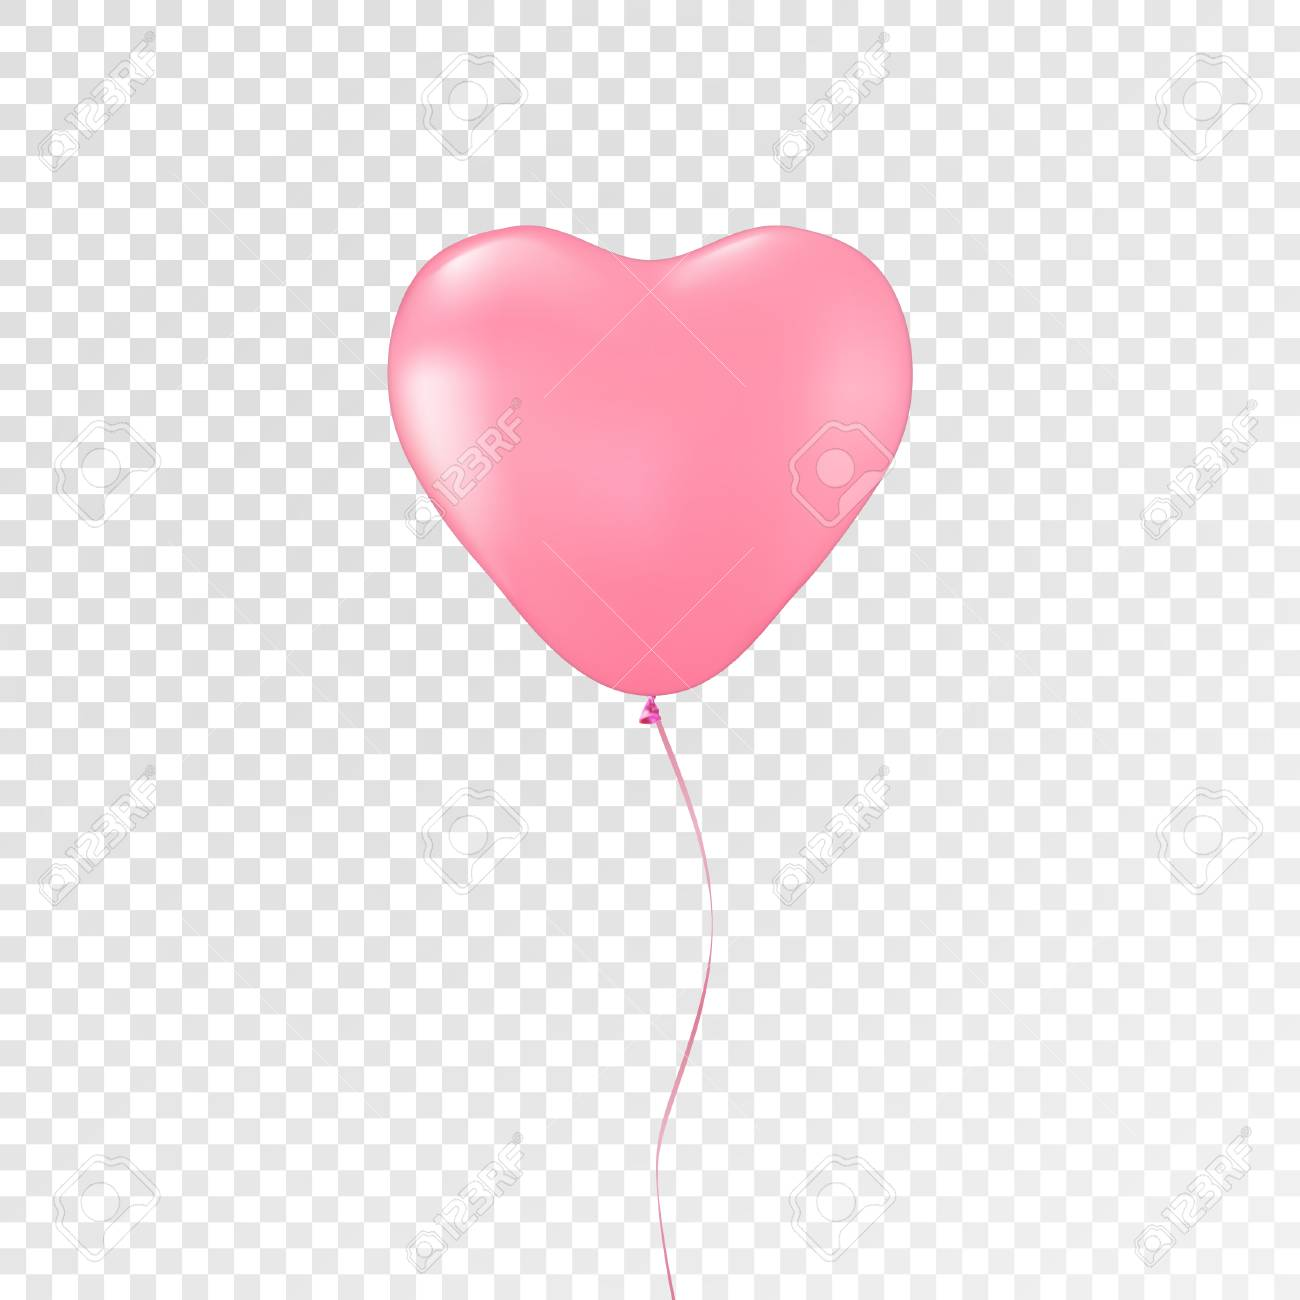 Heart Pink Balloon On Transparent Background Decorations For